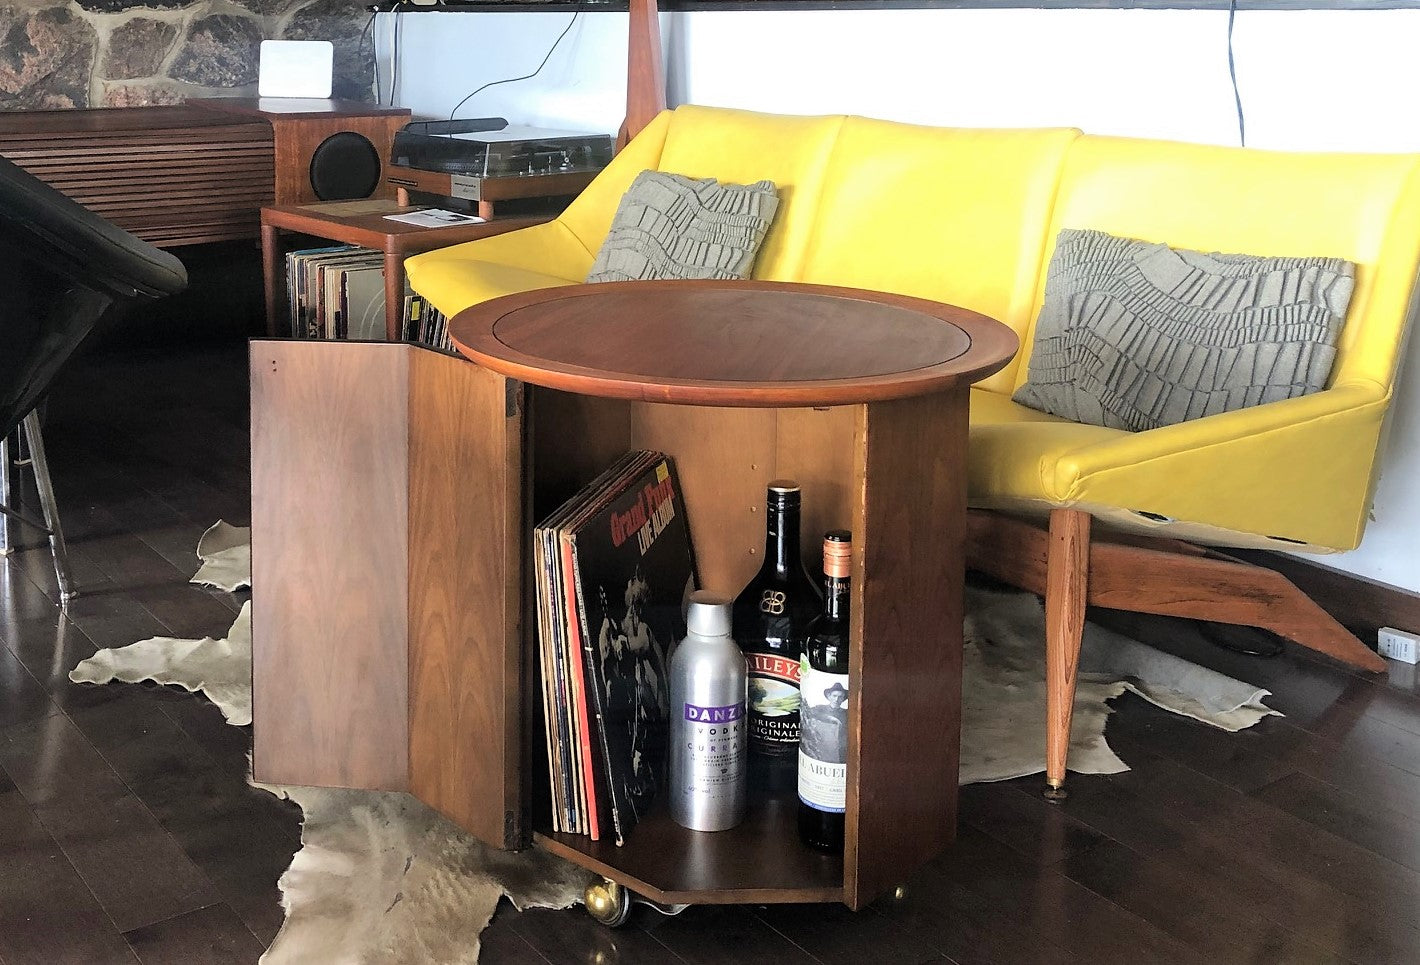 Brilliant Refinished Mcm Walnut Round Rolling Bar Lp Cabinet Or Accent Table W Storage Perfect Treated For Durability Machost Co Dining Chair Design Ideas Machostcouk